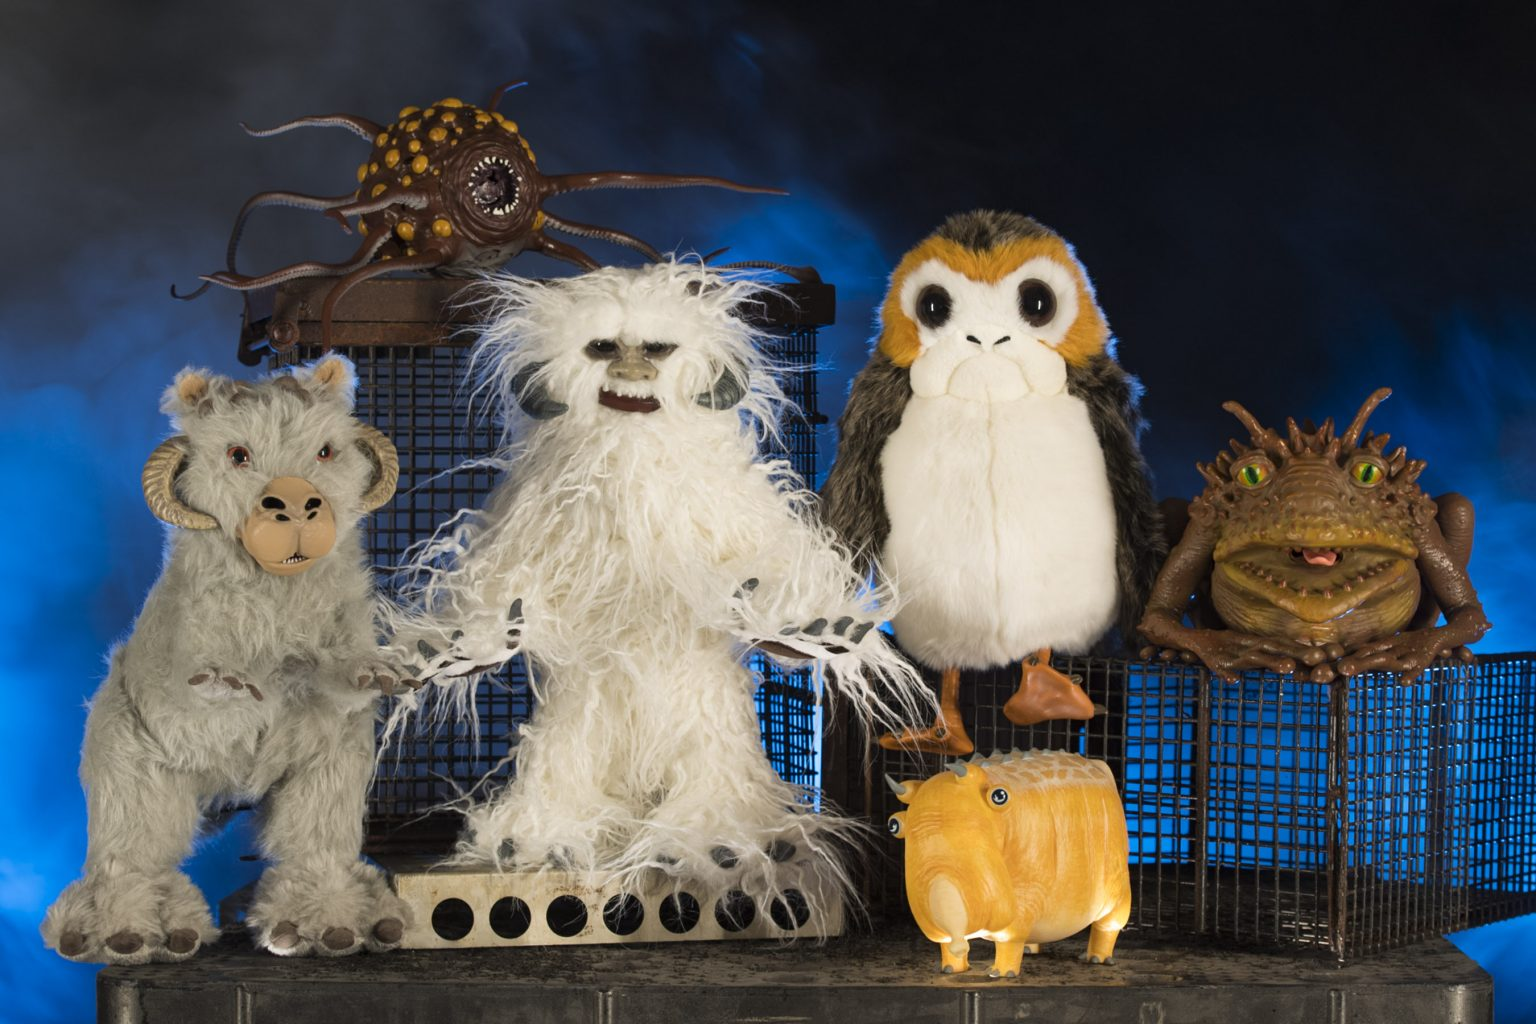 Adopt intergalactic creatures at the Creature Stall in Disney's Star Wars: Galaxy's Edge